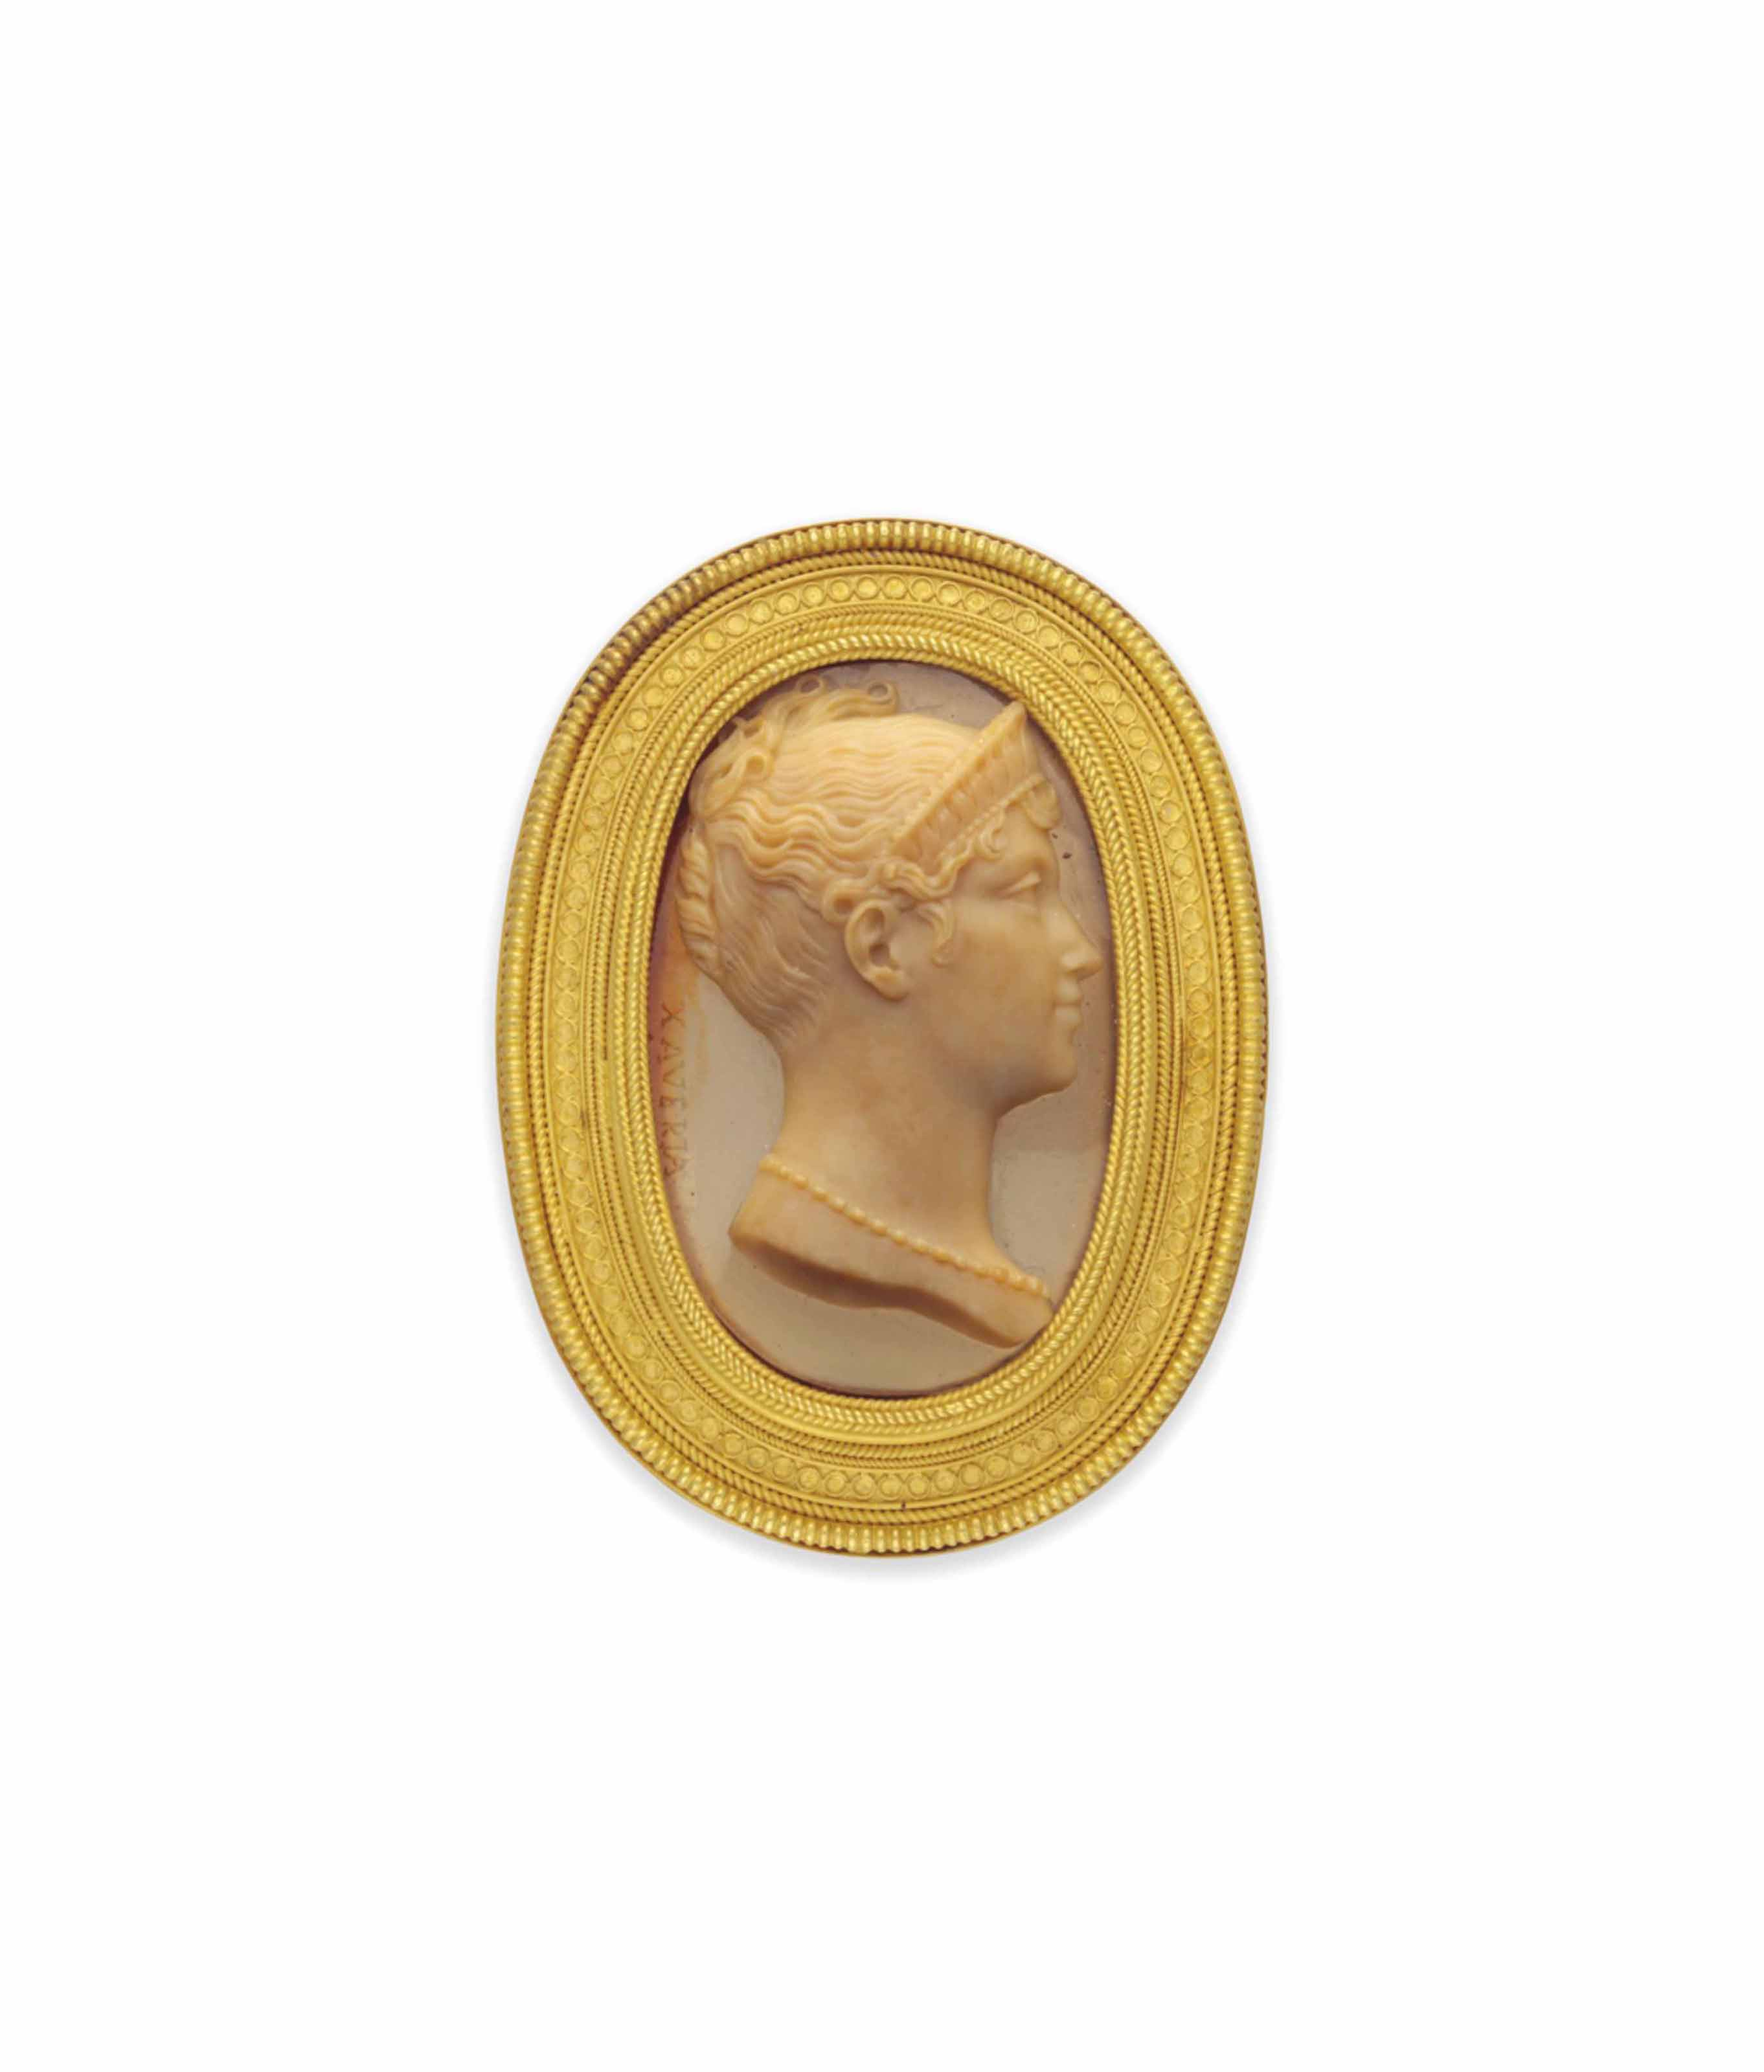 A 19TH CENTURY GOLD AND HARDSTONE CAMEO BROOCH, BY CASTELLANI